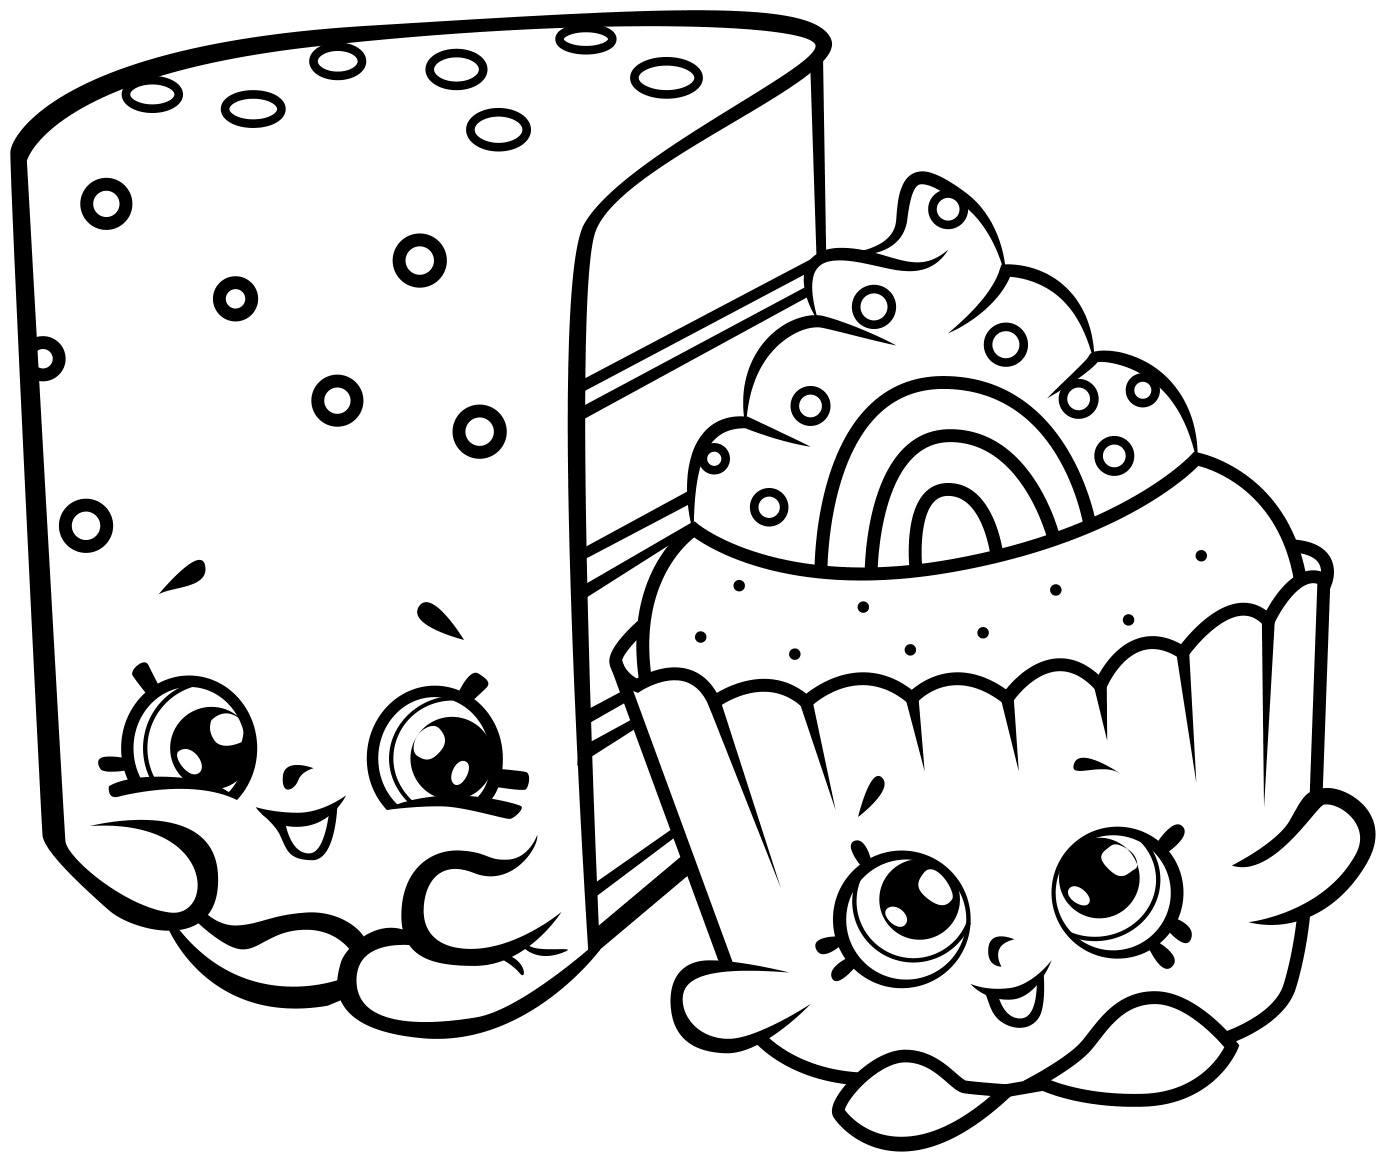 1386x1162 Awesome Shopkins Coloring Pages Page Of Shopkins Coloring